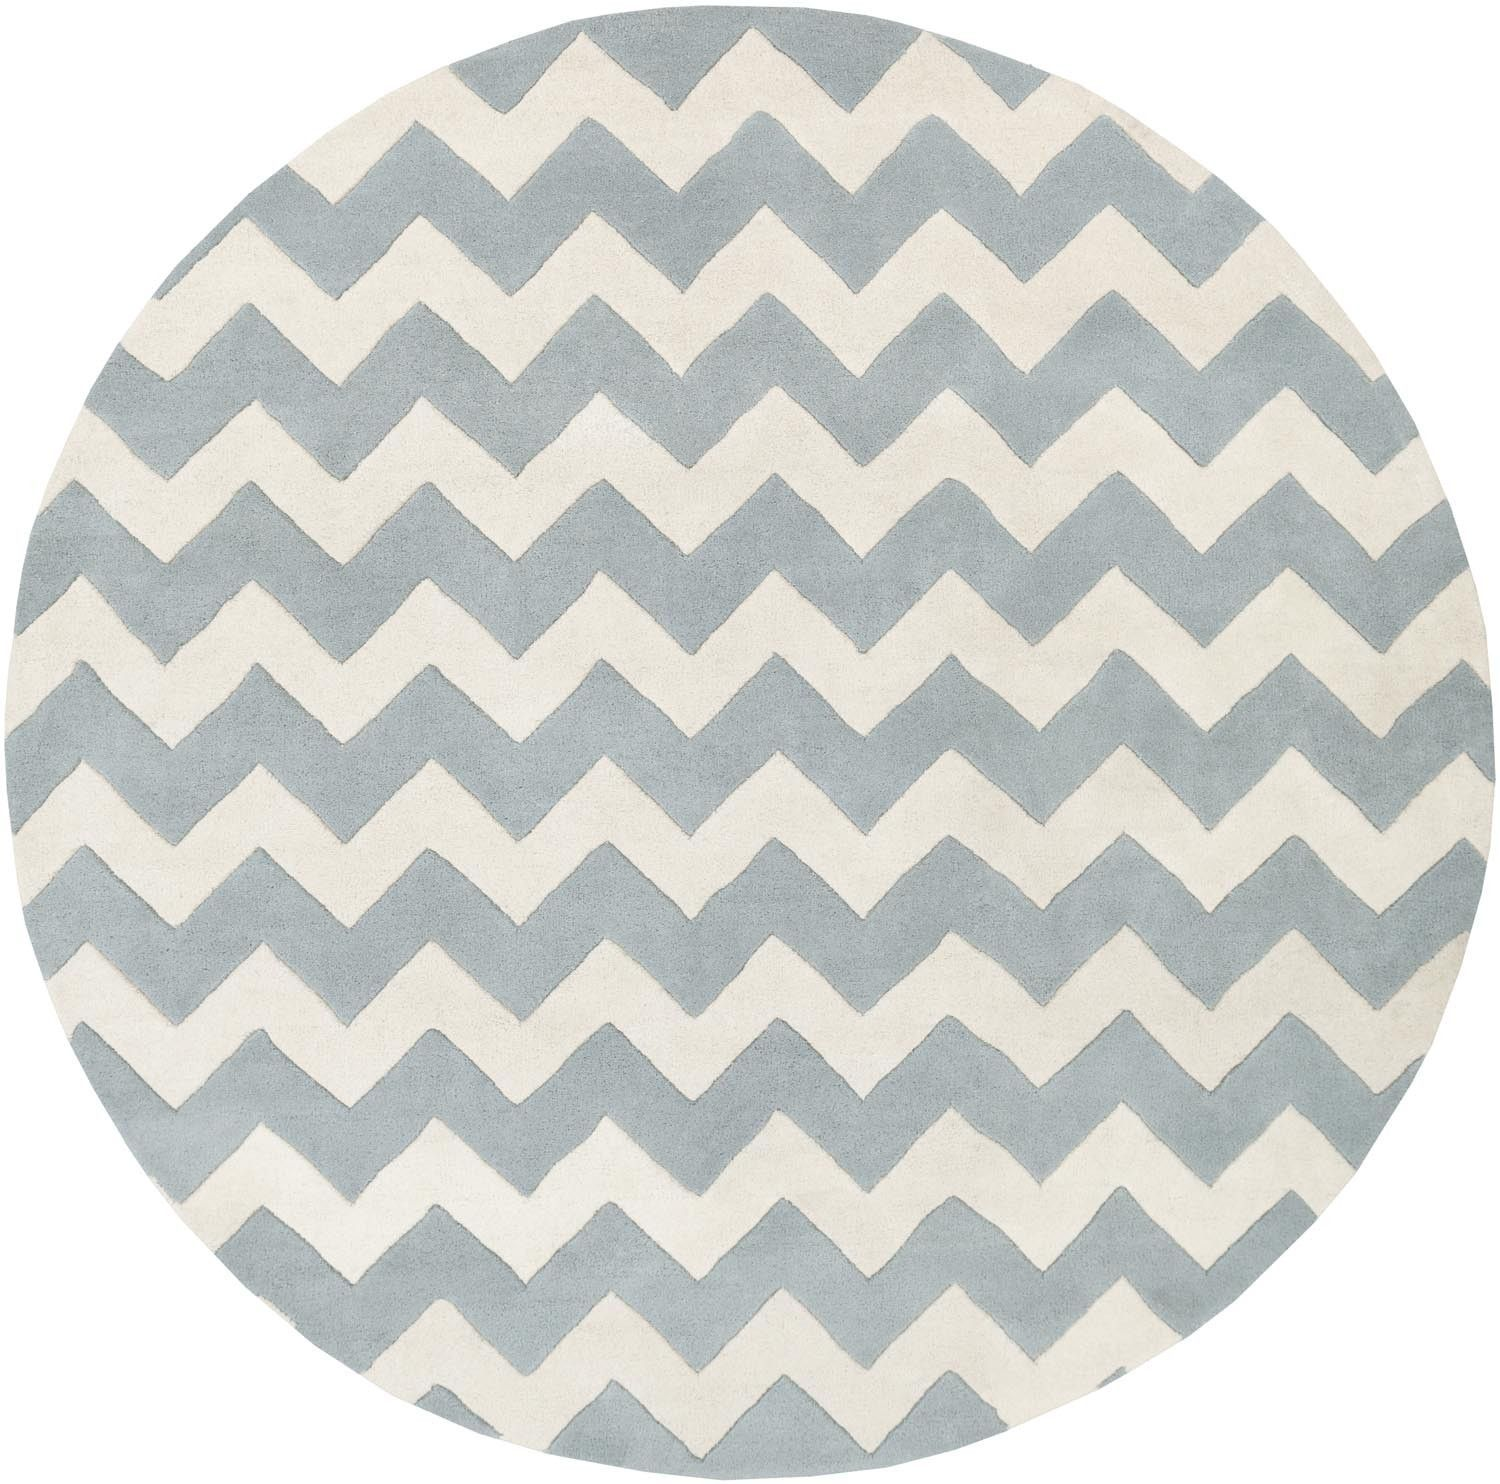 Transit Awat 2041 Light Blue Ivory Modern Premium Wool Rug Area Rug Collections Chevron Area Rugs Wool Area Rugs